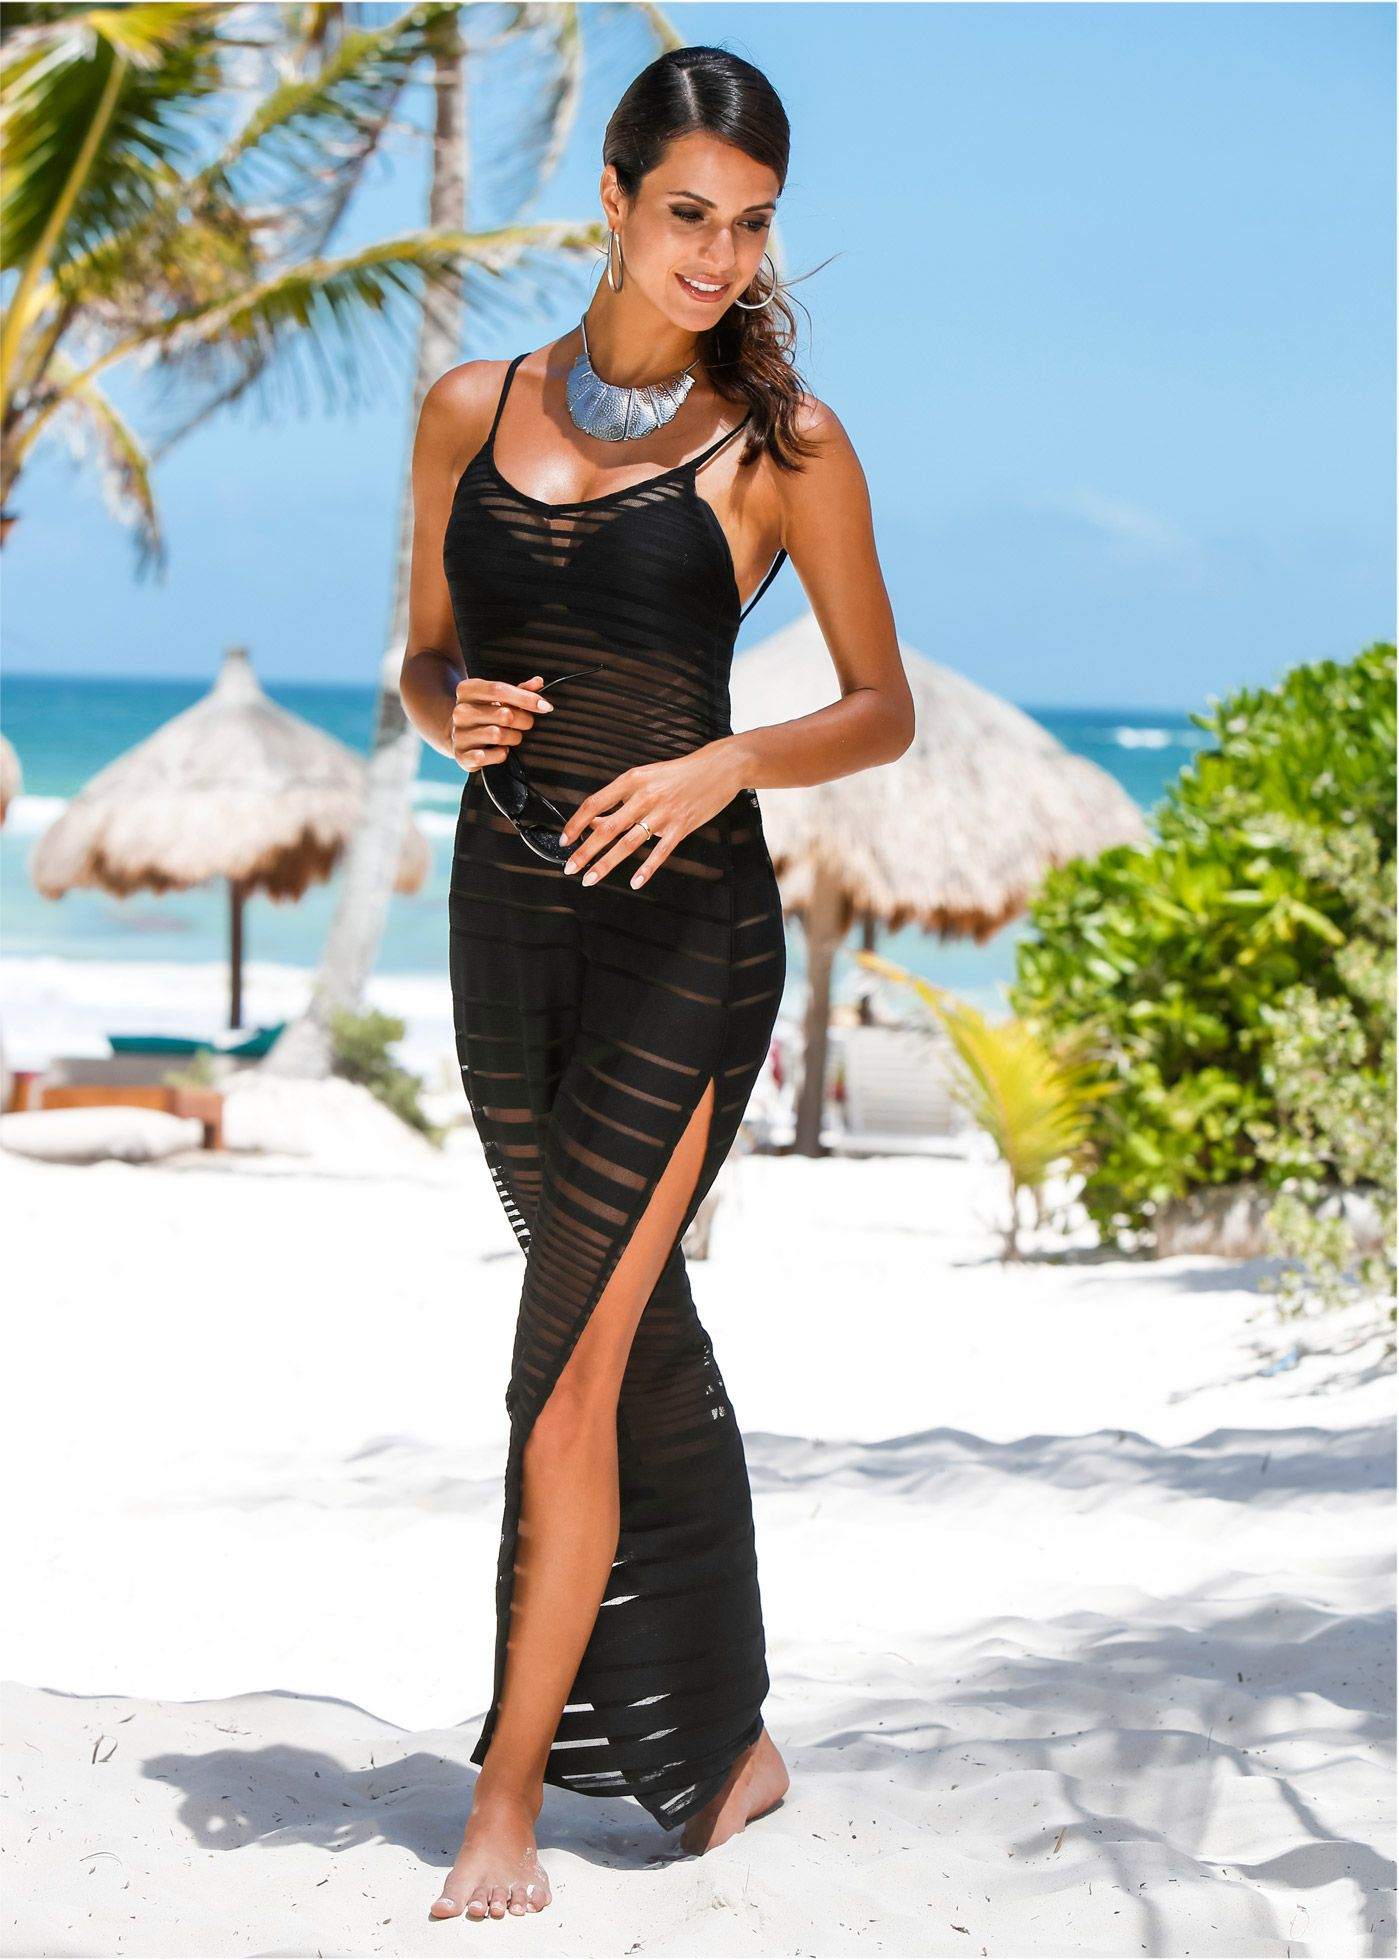 f2be85df2b bon prix tenue de plage